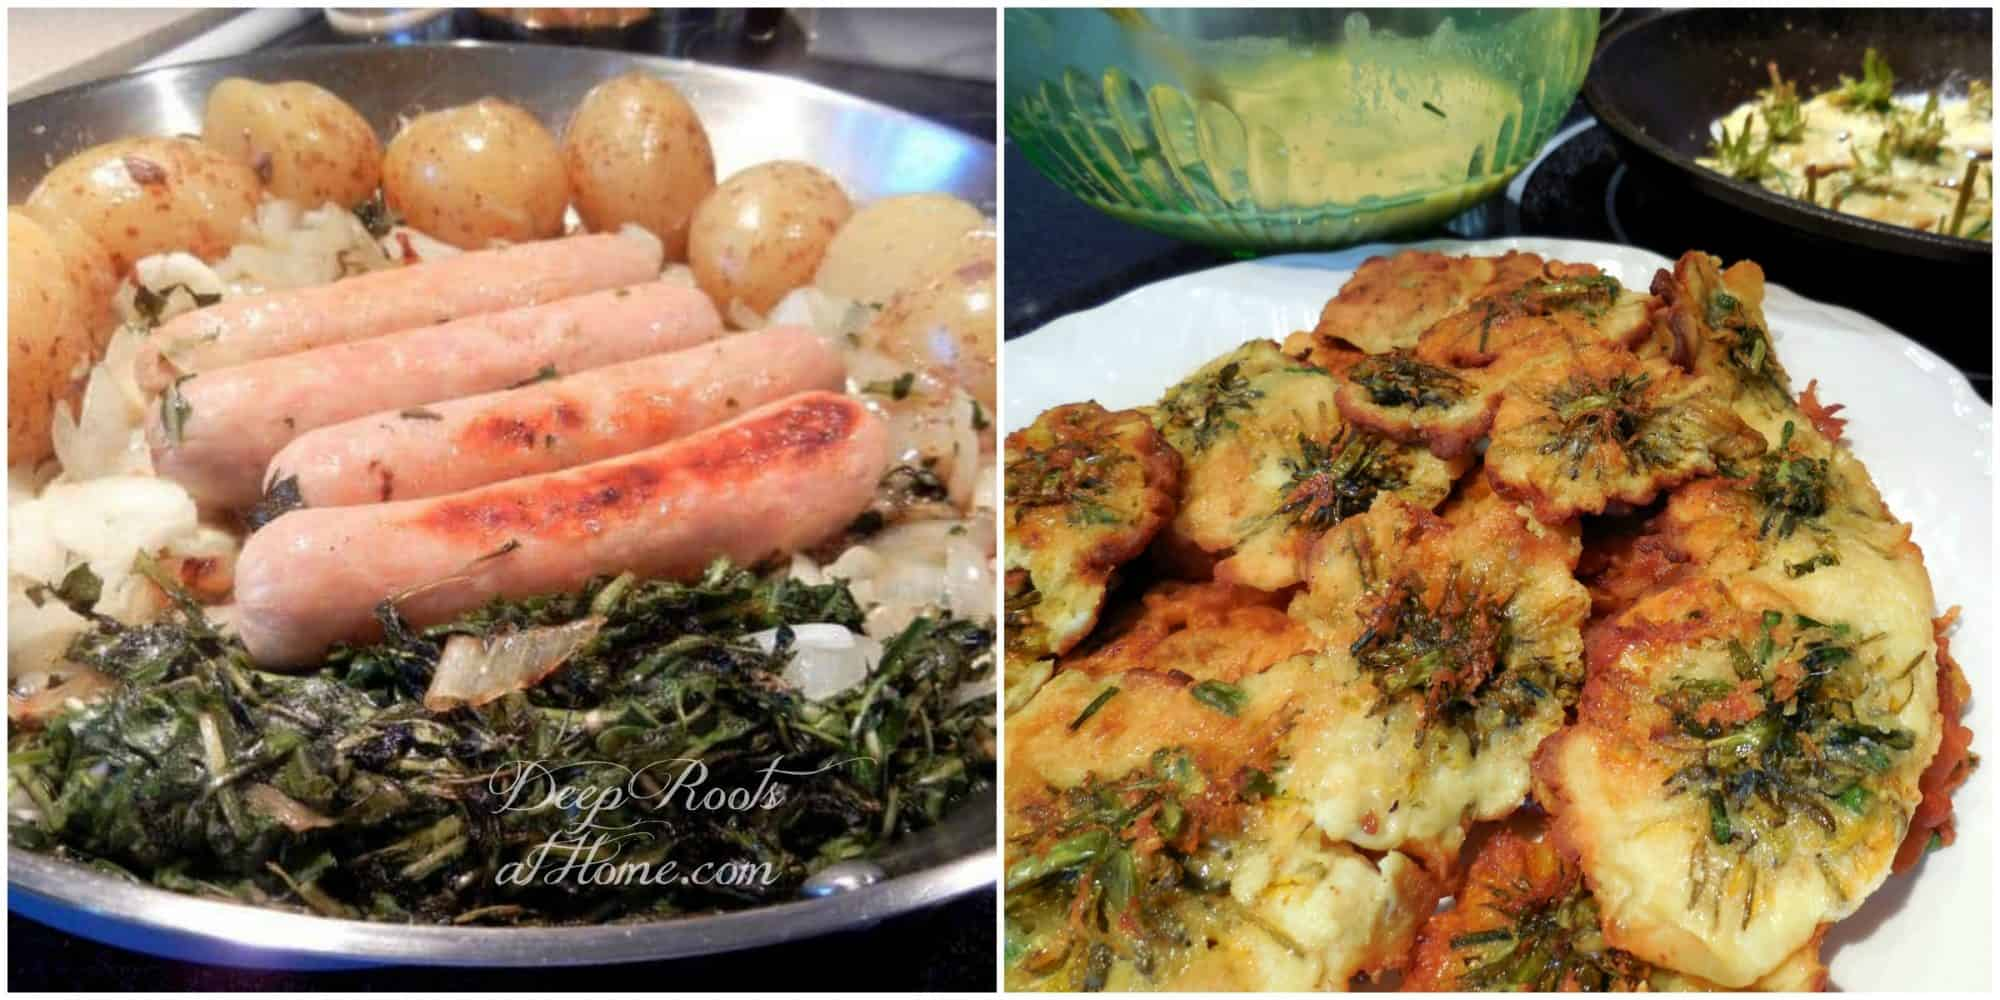 sausage, dandelion greens and potatoes, and fritters